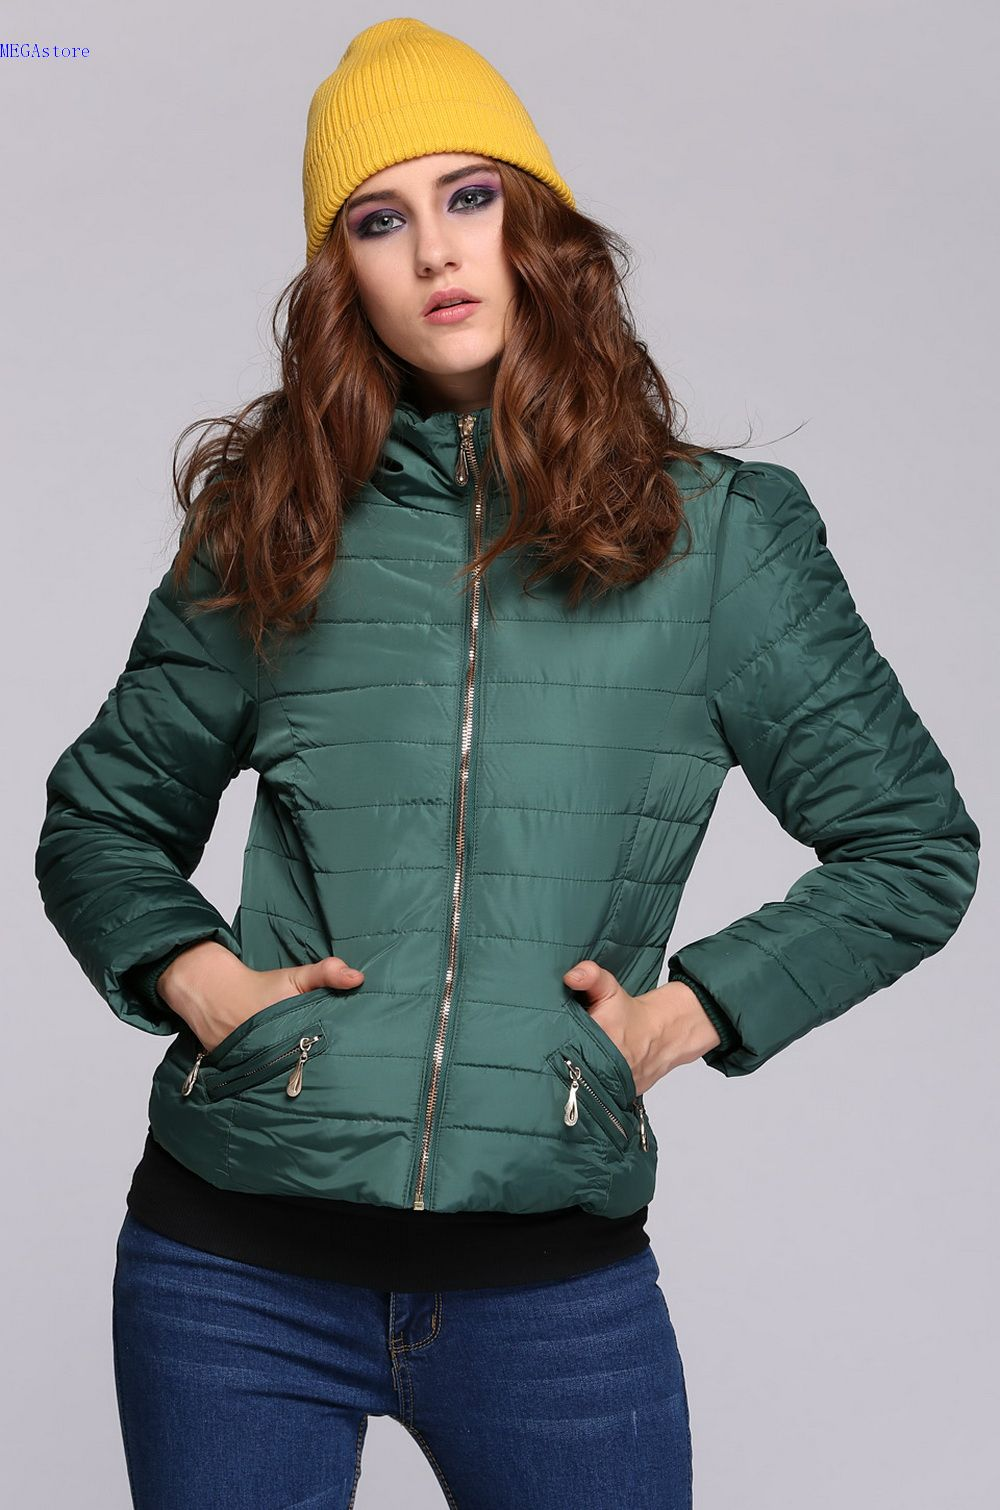 Aliexpress.com : Buy Hot Sale Ladies Cotton Jackets Coat Winter ...